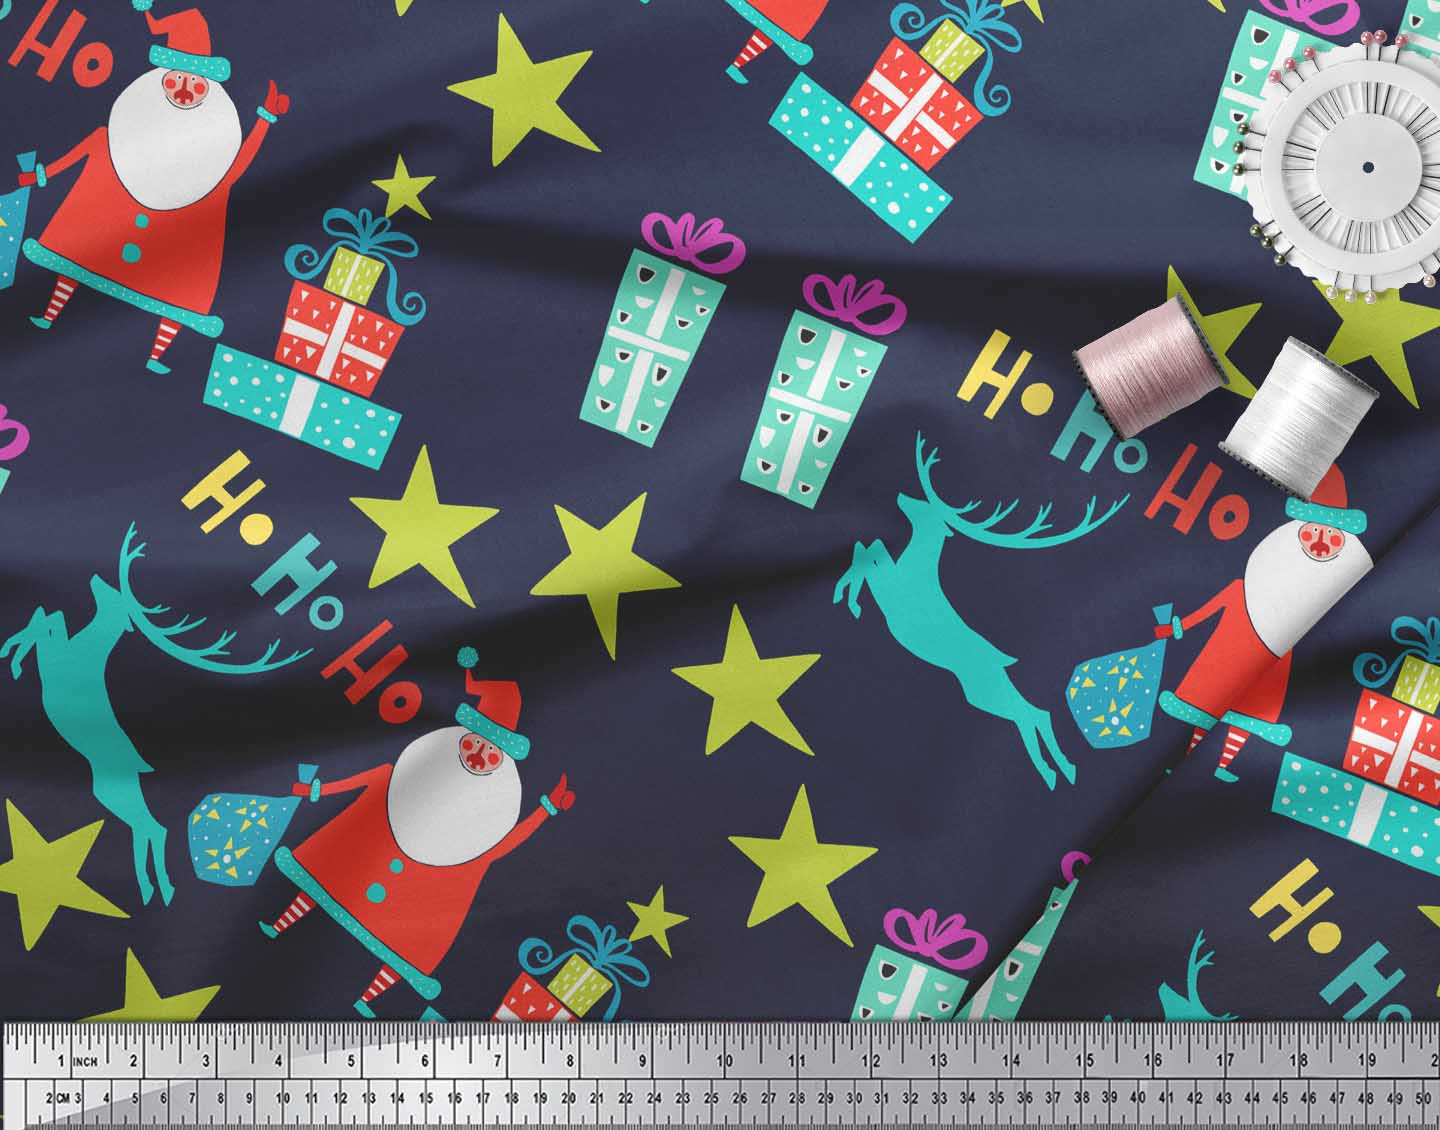 Soimoi-Blue-Cotton-Poplin-Fabric-Santa-amp-Gifts-Kids-Fabric-Prints-x3R thumbnail 4